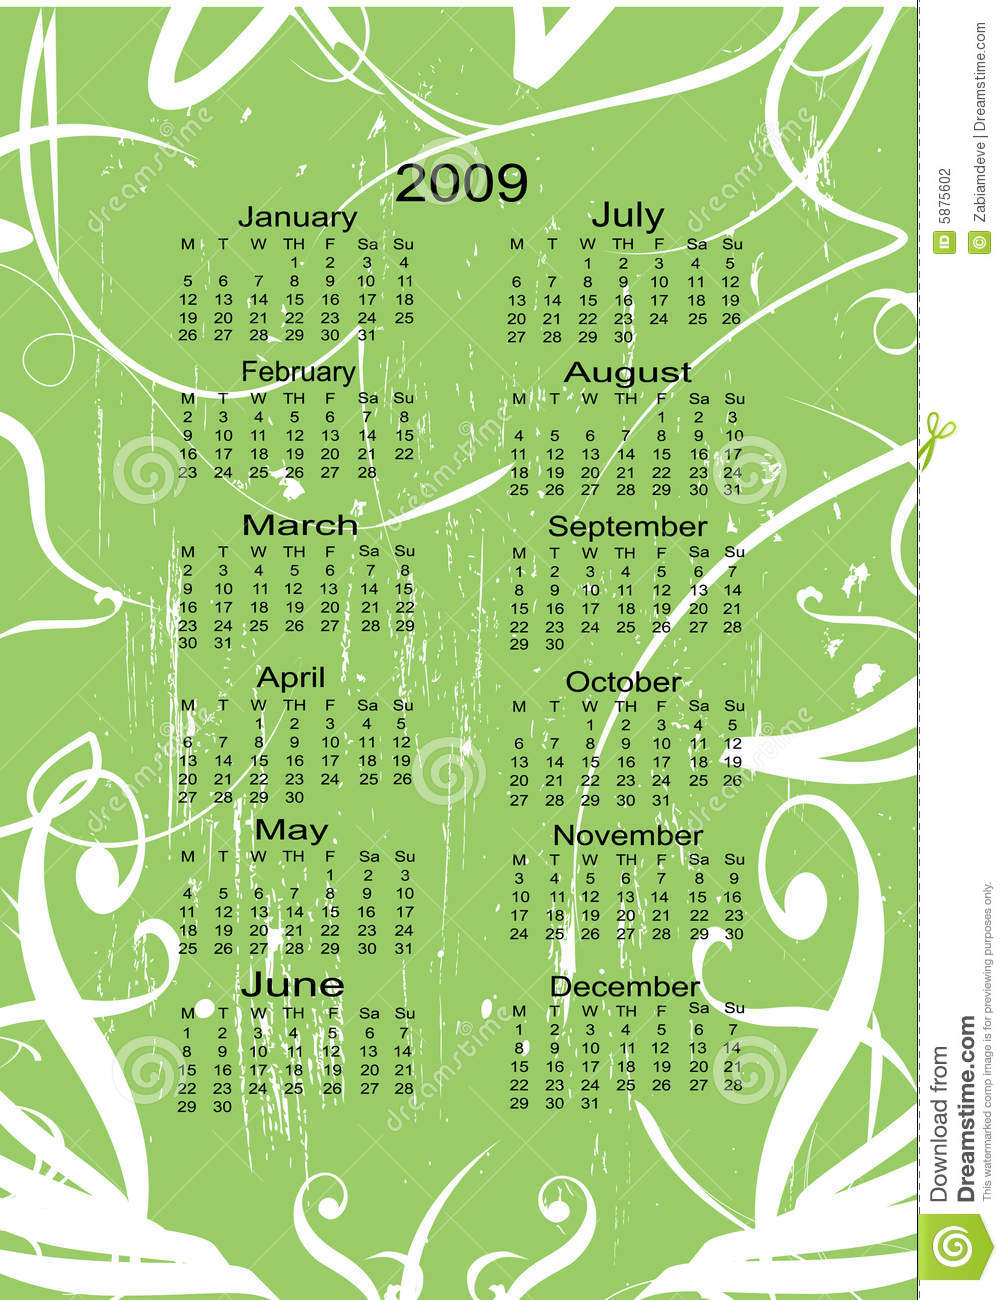 Next Year Calendar : Calendar for the next year stock photography image